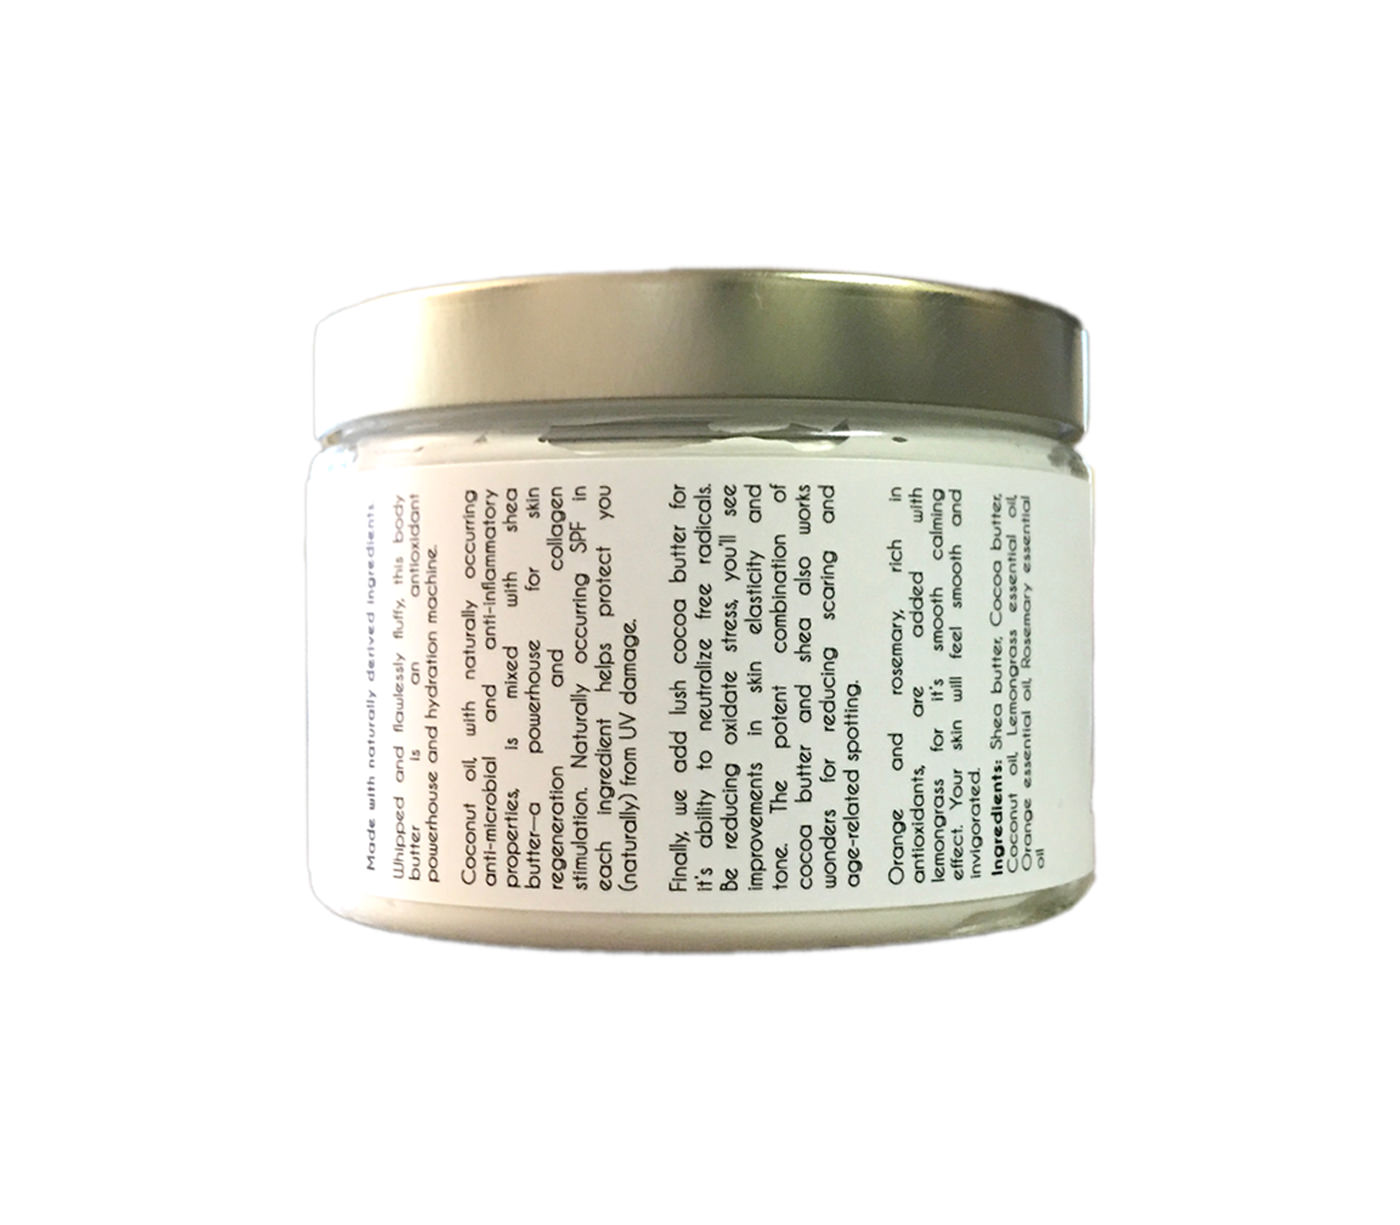 citrus-herb-bath-butter-organic-skincare-herbal-natural-body-butter.jpg